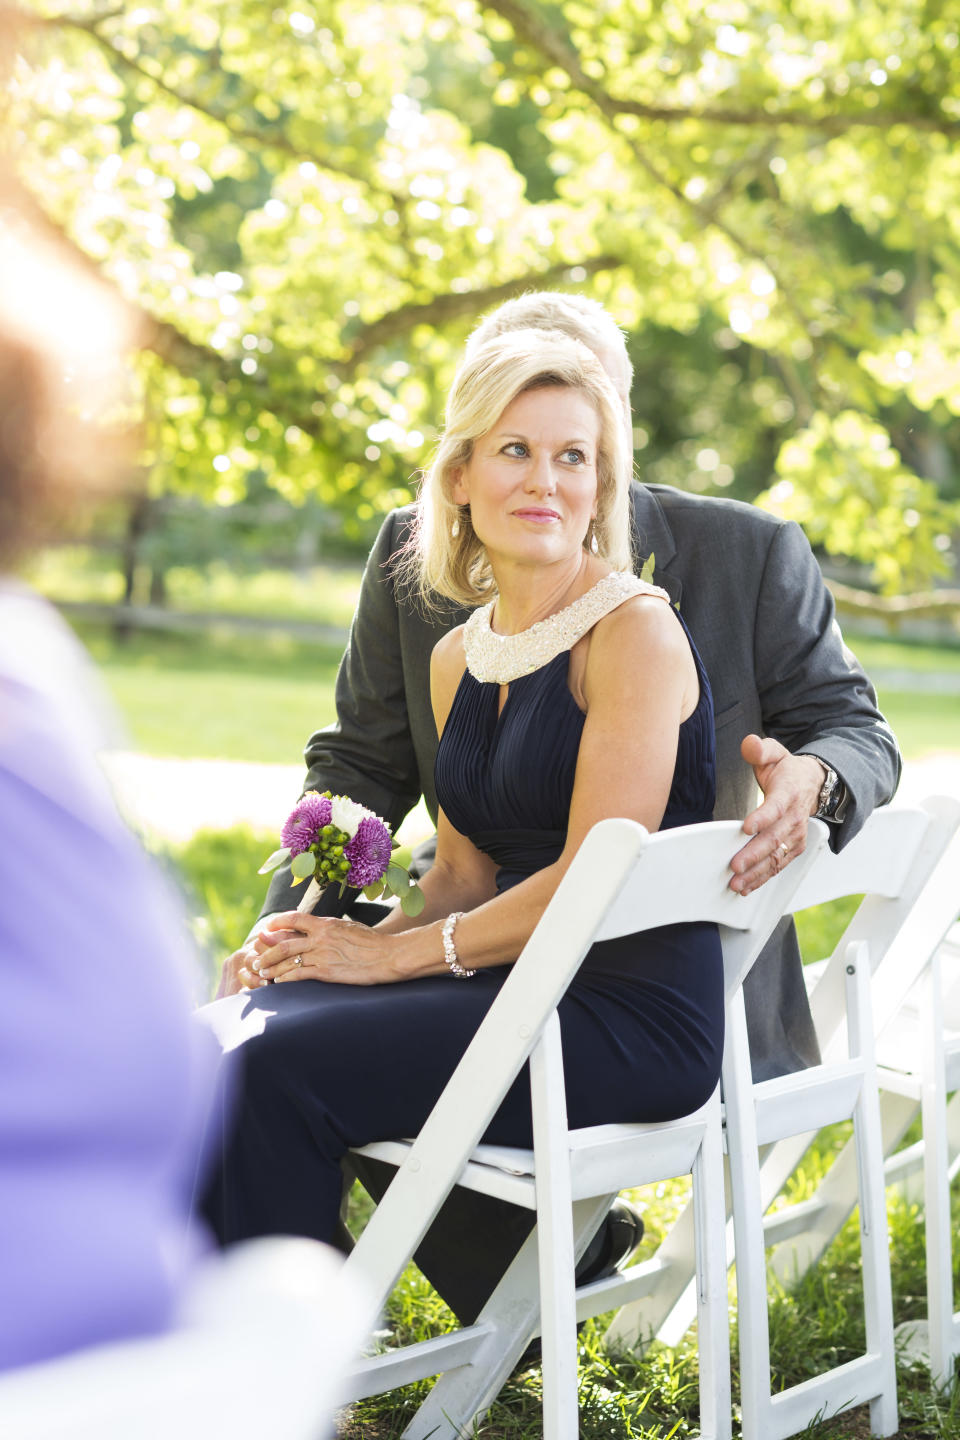 A mum has been left furious at her son's wedding day seating arrangements. Photo: Getty Images